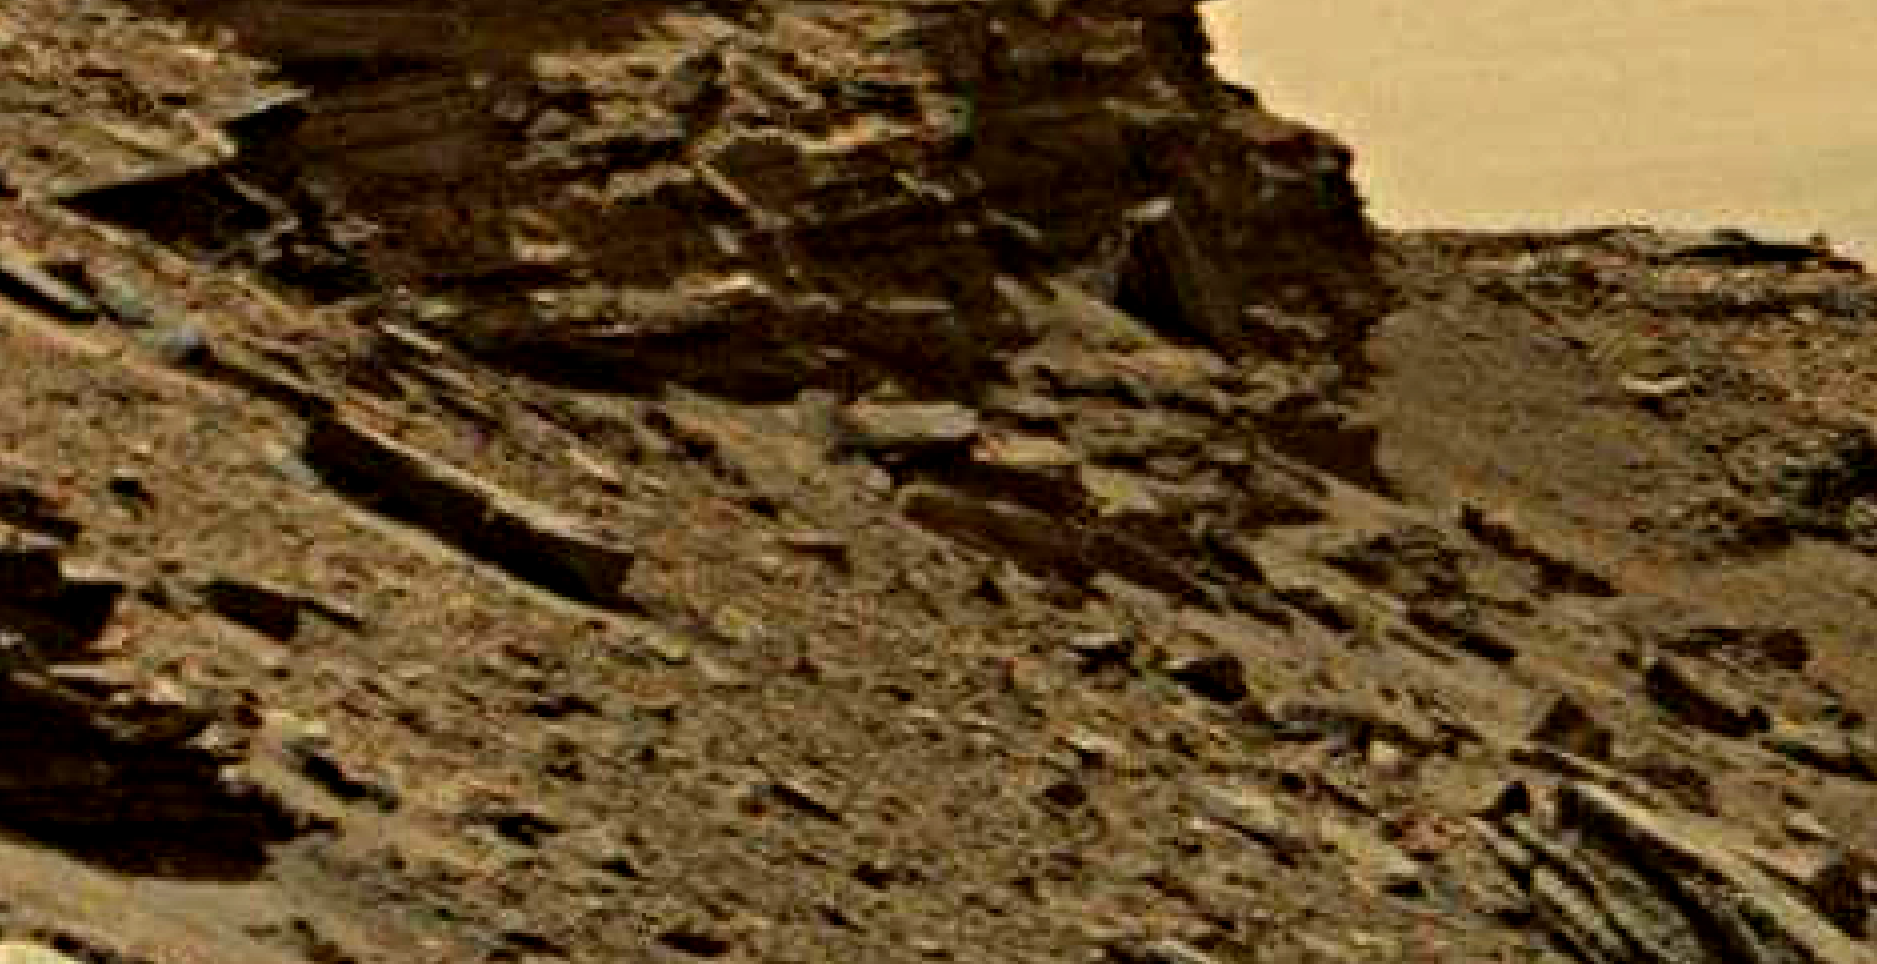 mars sol 1434 anomaly artifacts 3 was life on mars